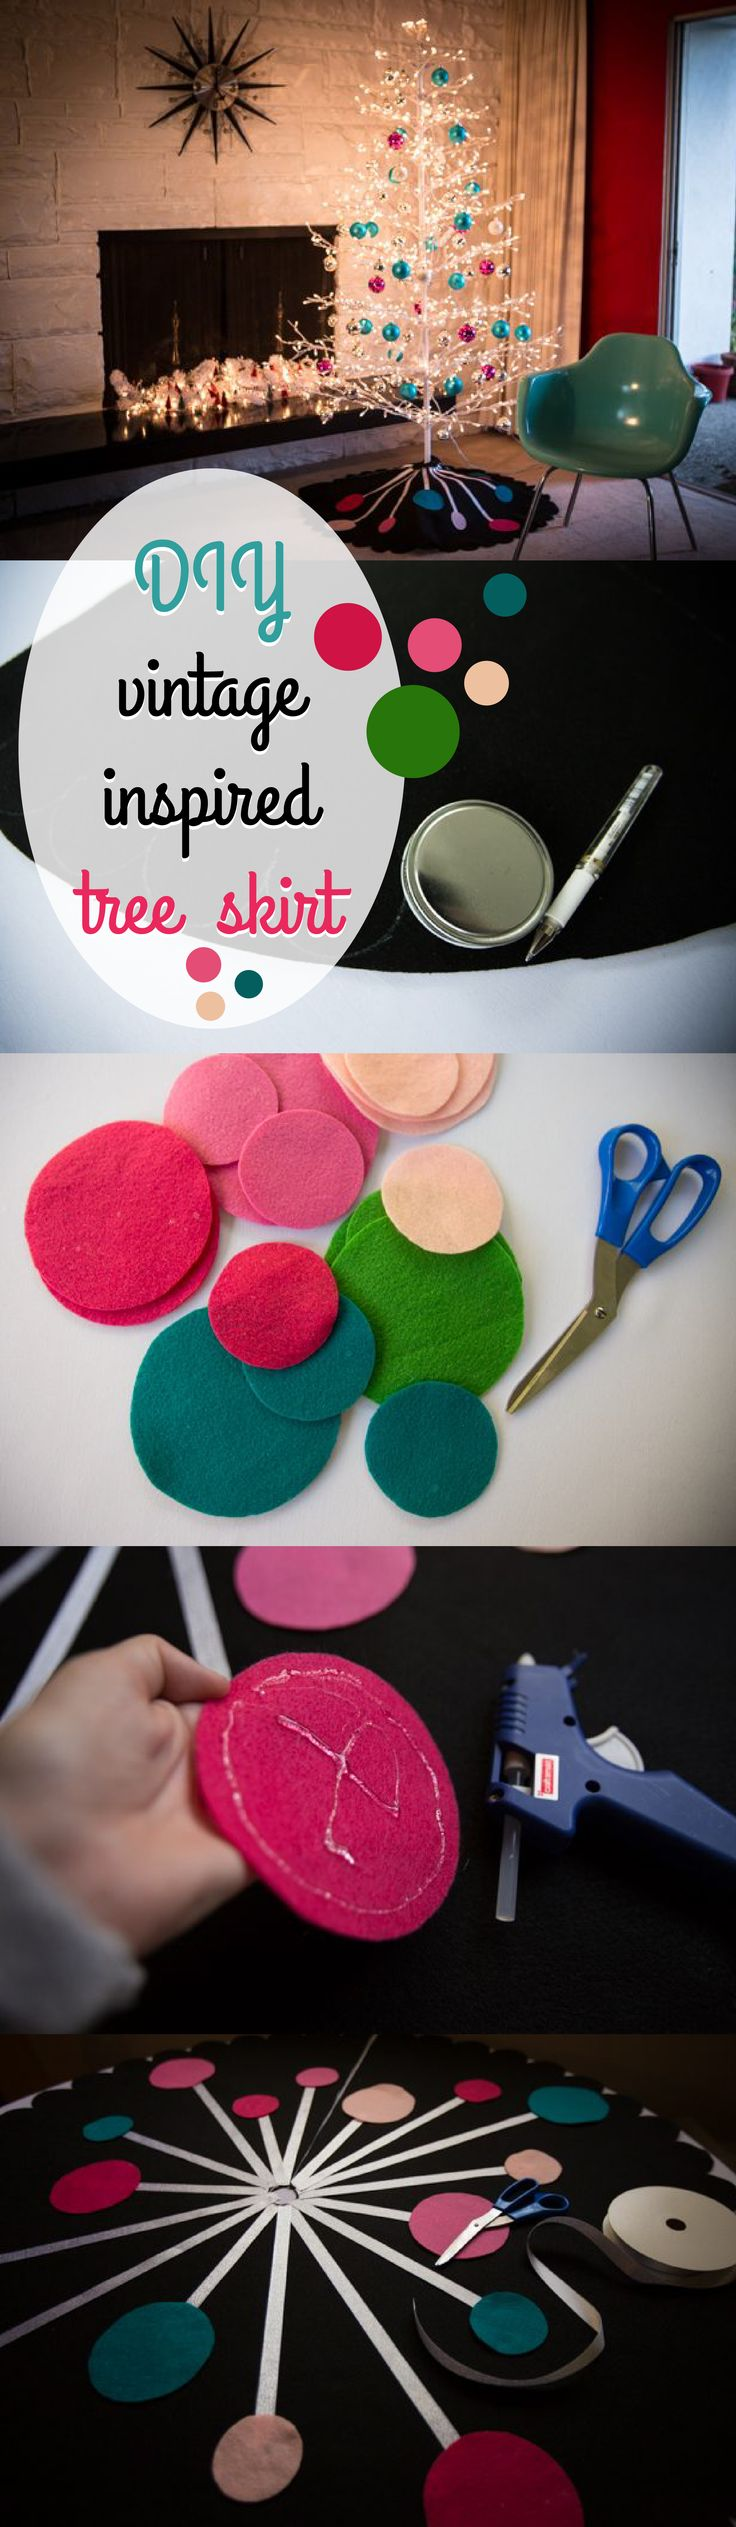 DIY an easy no-sew vintage feel tree skirt for your modern Christmas tree. It's funky and fun and since you are making it yourself, it adds that warm feel to your holiday decor. http://www.ehow.com/how_12340351_make-vintageinspired-christmas-tree-skirt.html?utm_source=pinterest.com&utm_medium=referral&utm_content=inline&utm_campaign=fanpage